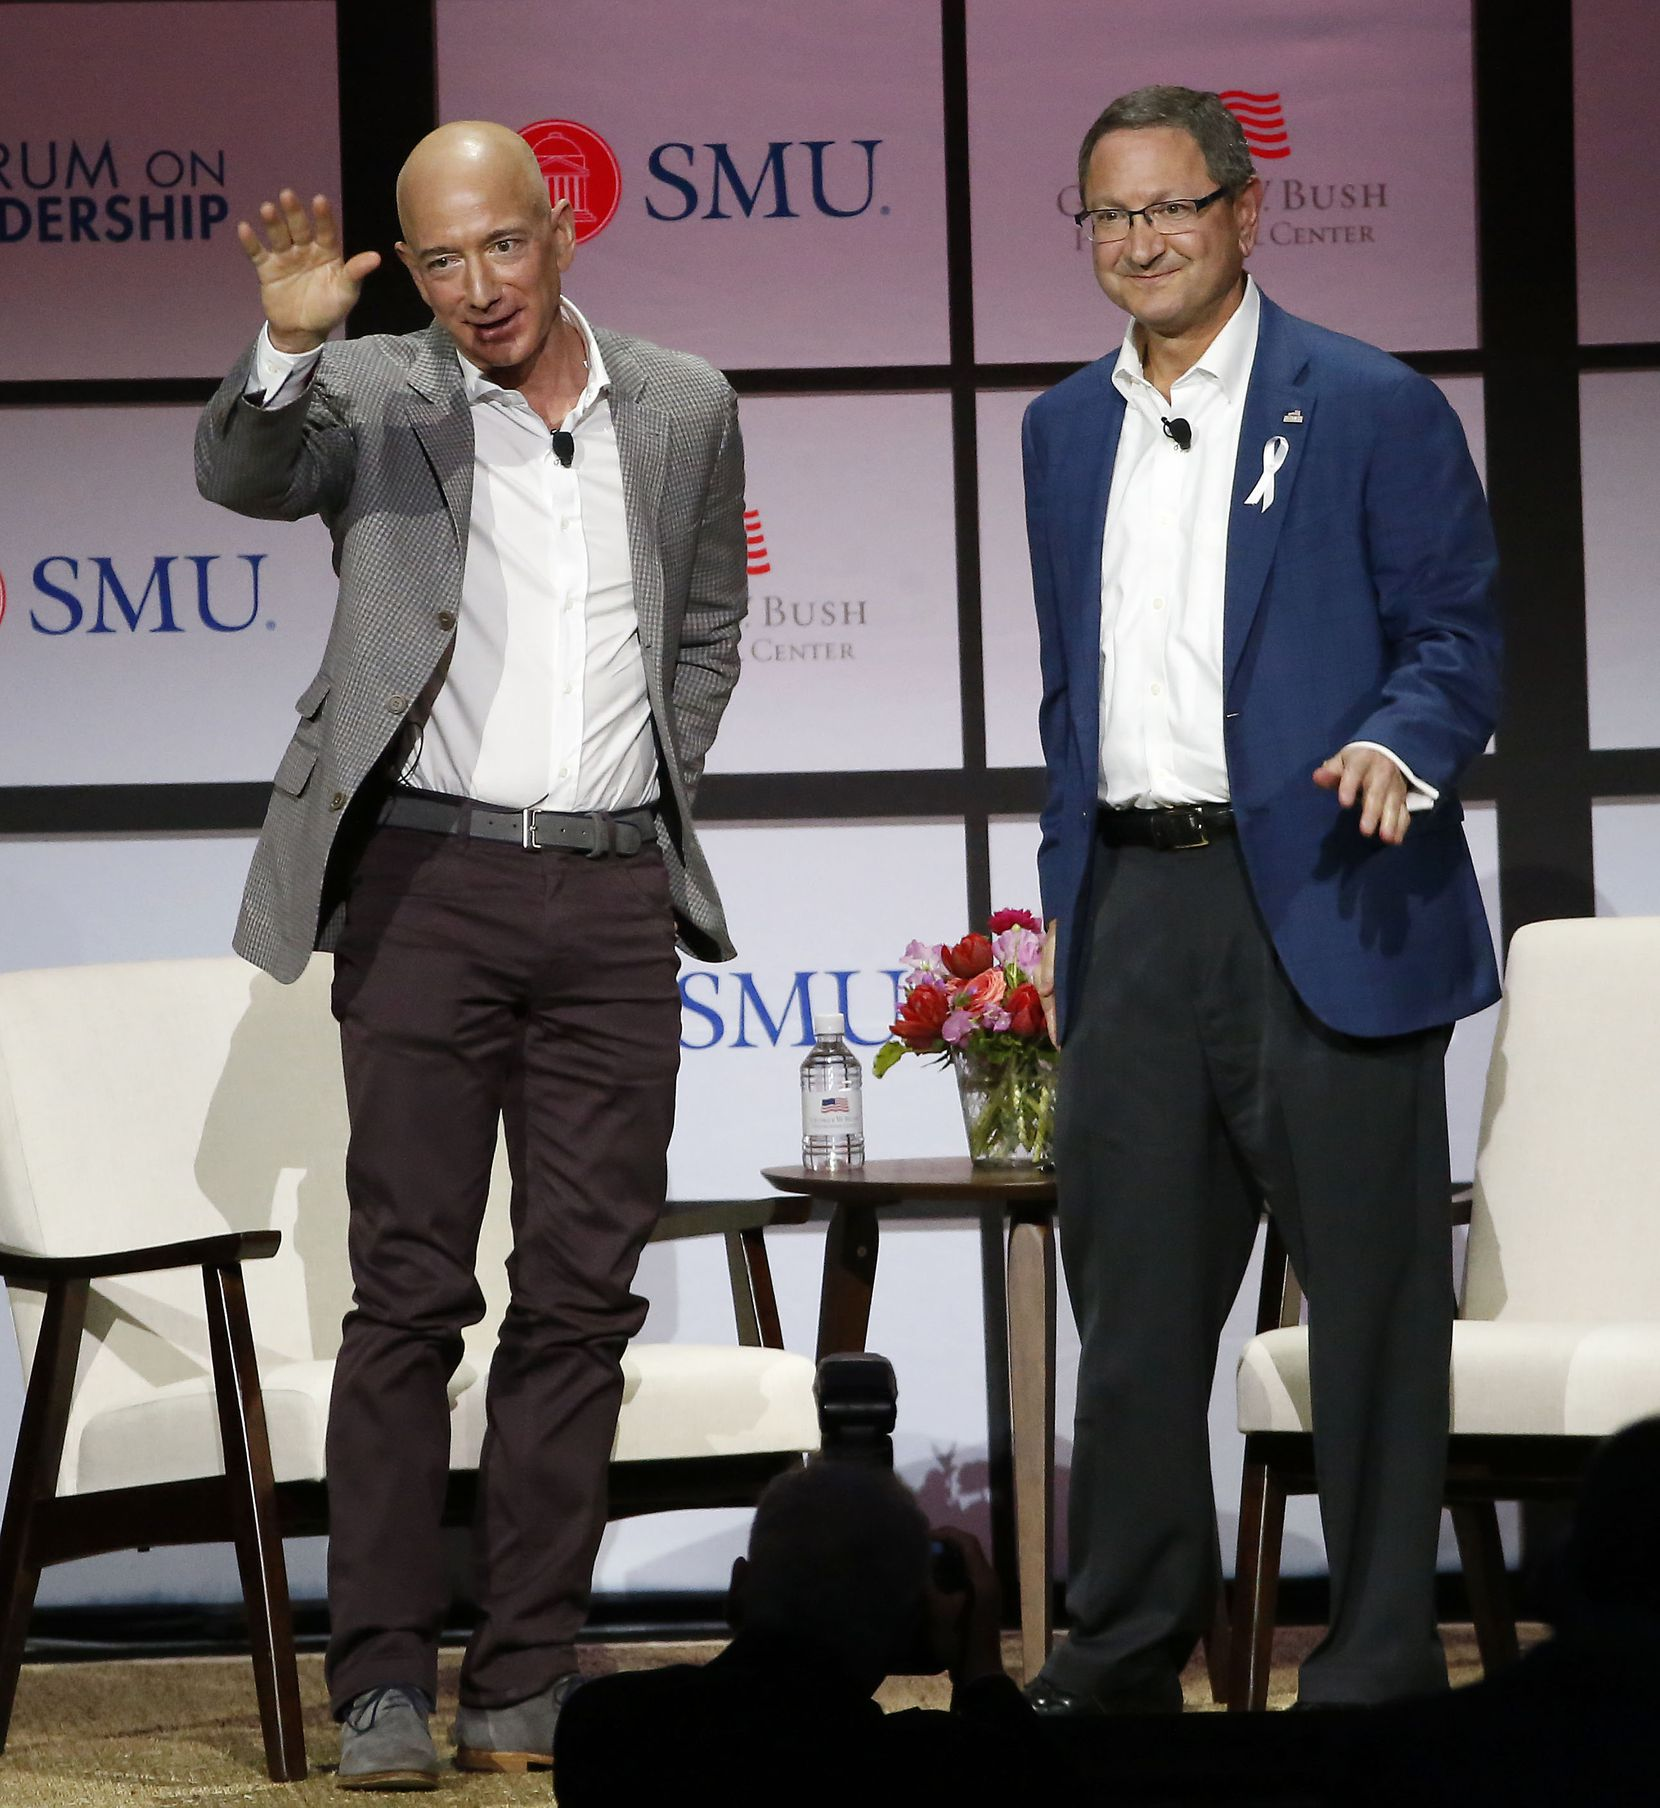 Jeff Bezos, chairman and CEO of Amazon, waved to the crowd next to Ken Hersh, president and chief executive of the George W. Bush Presidential Center, at the 2018 George W. Bush Presidential Center's Forum on Leadership at Moody Coliseum.